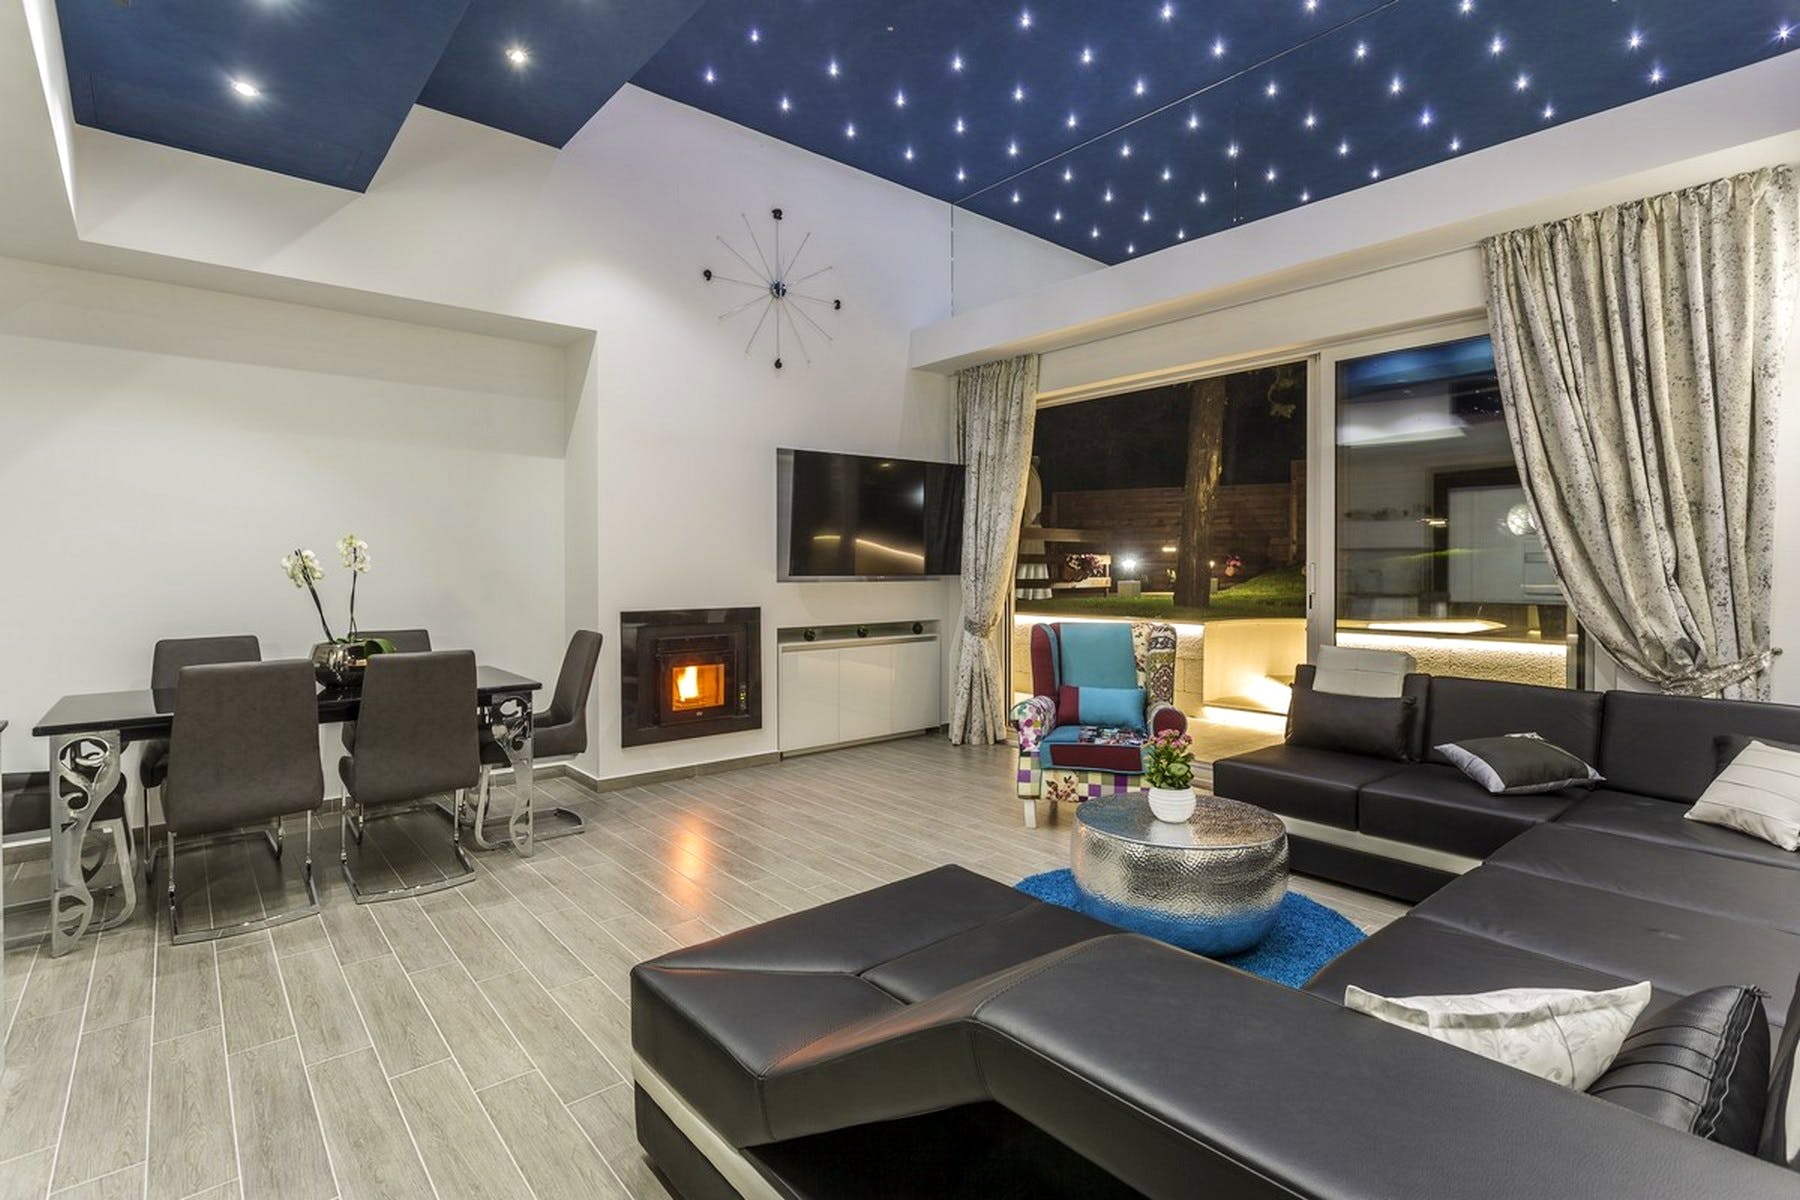 Spacious living room with a fireplace